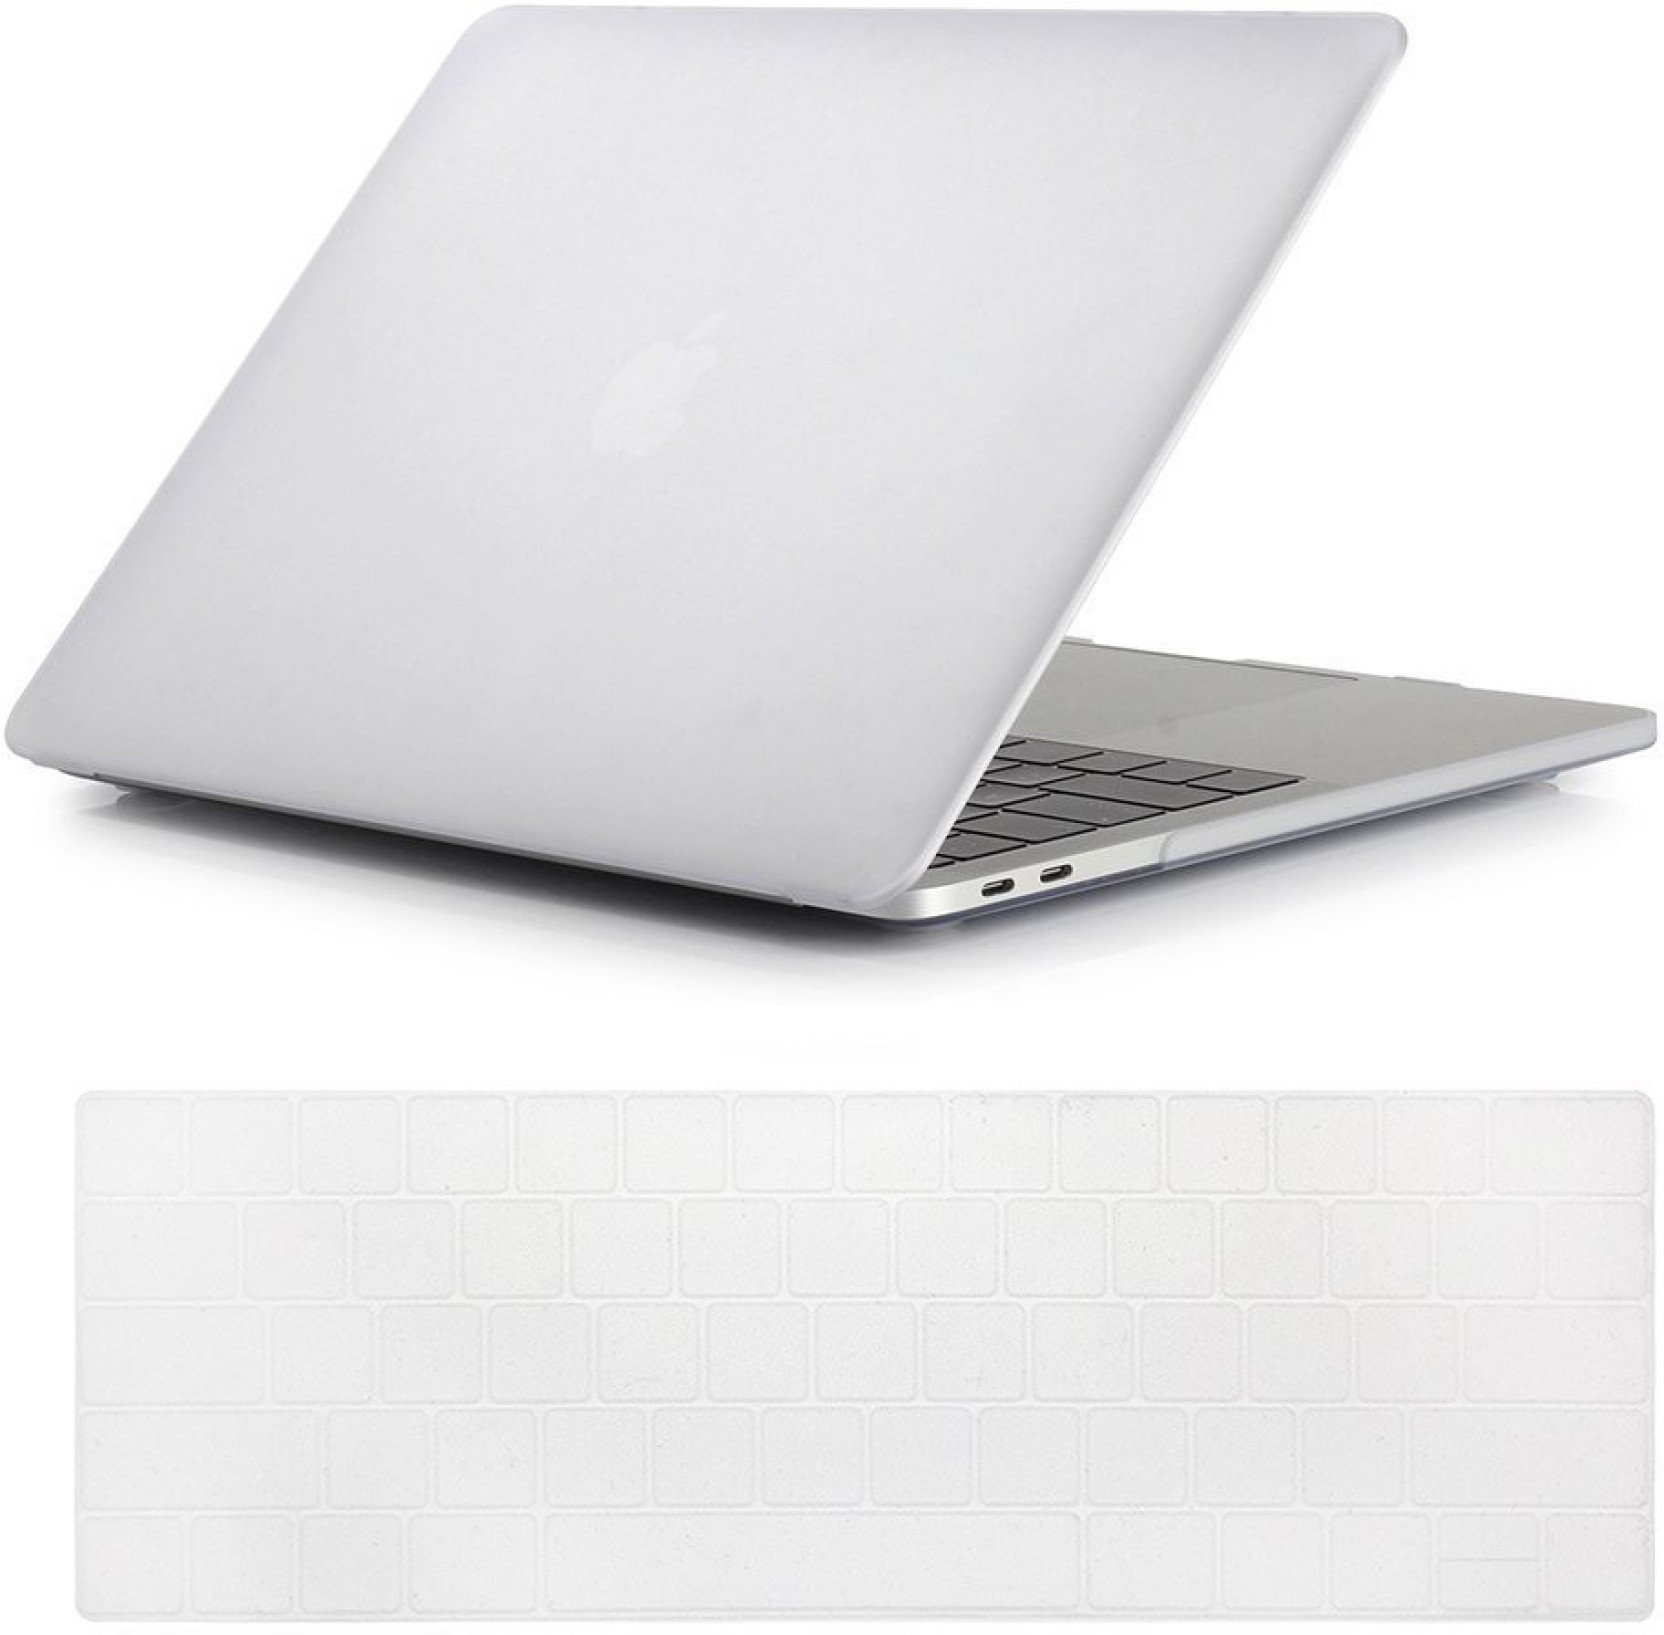 Ifyx Hard Case For Apple Macbook Pro 13 Inch 2016 A1706 A1708 Md101 Silver Notebook Add To Cart